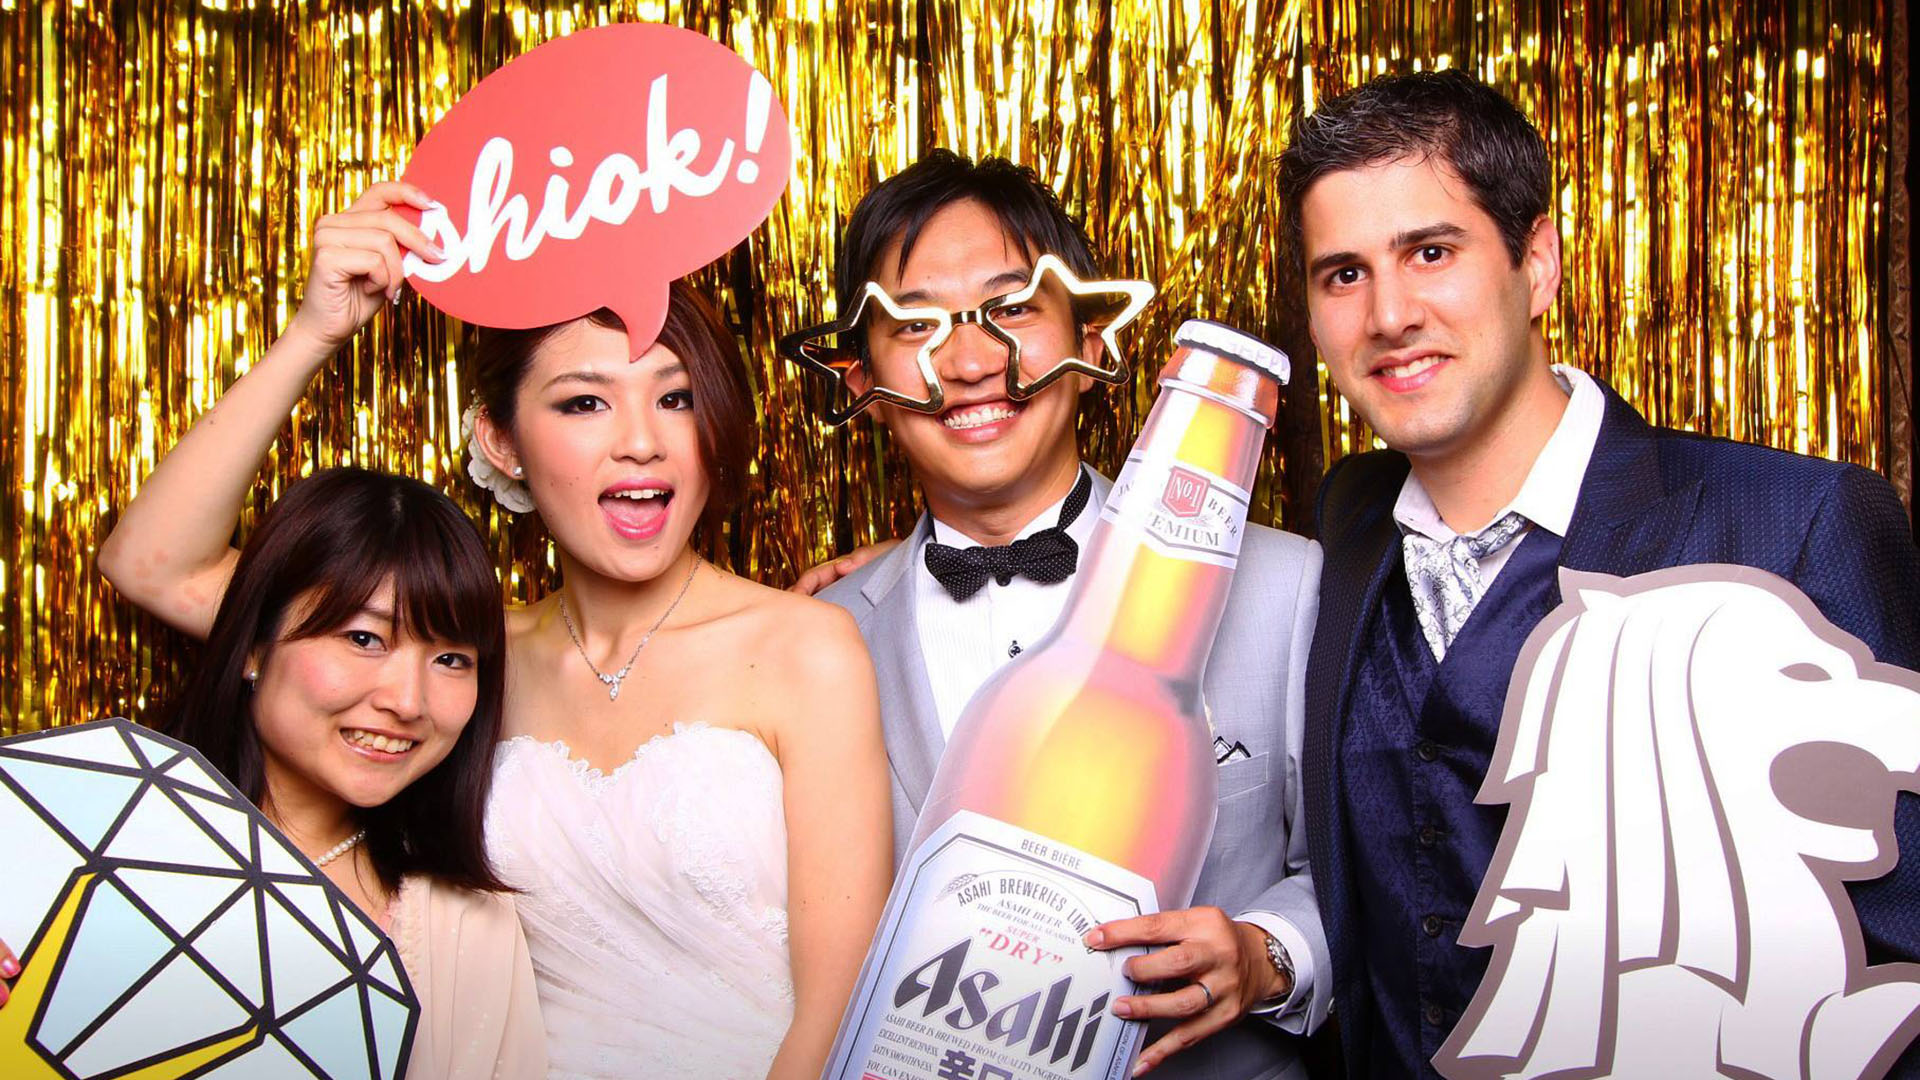 Fourstops • Singapore Photobooth • Gavin & Saeko Wedding Photobooth